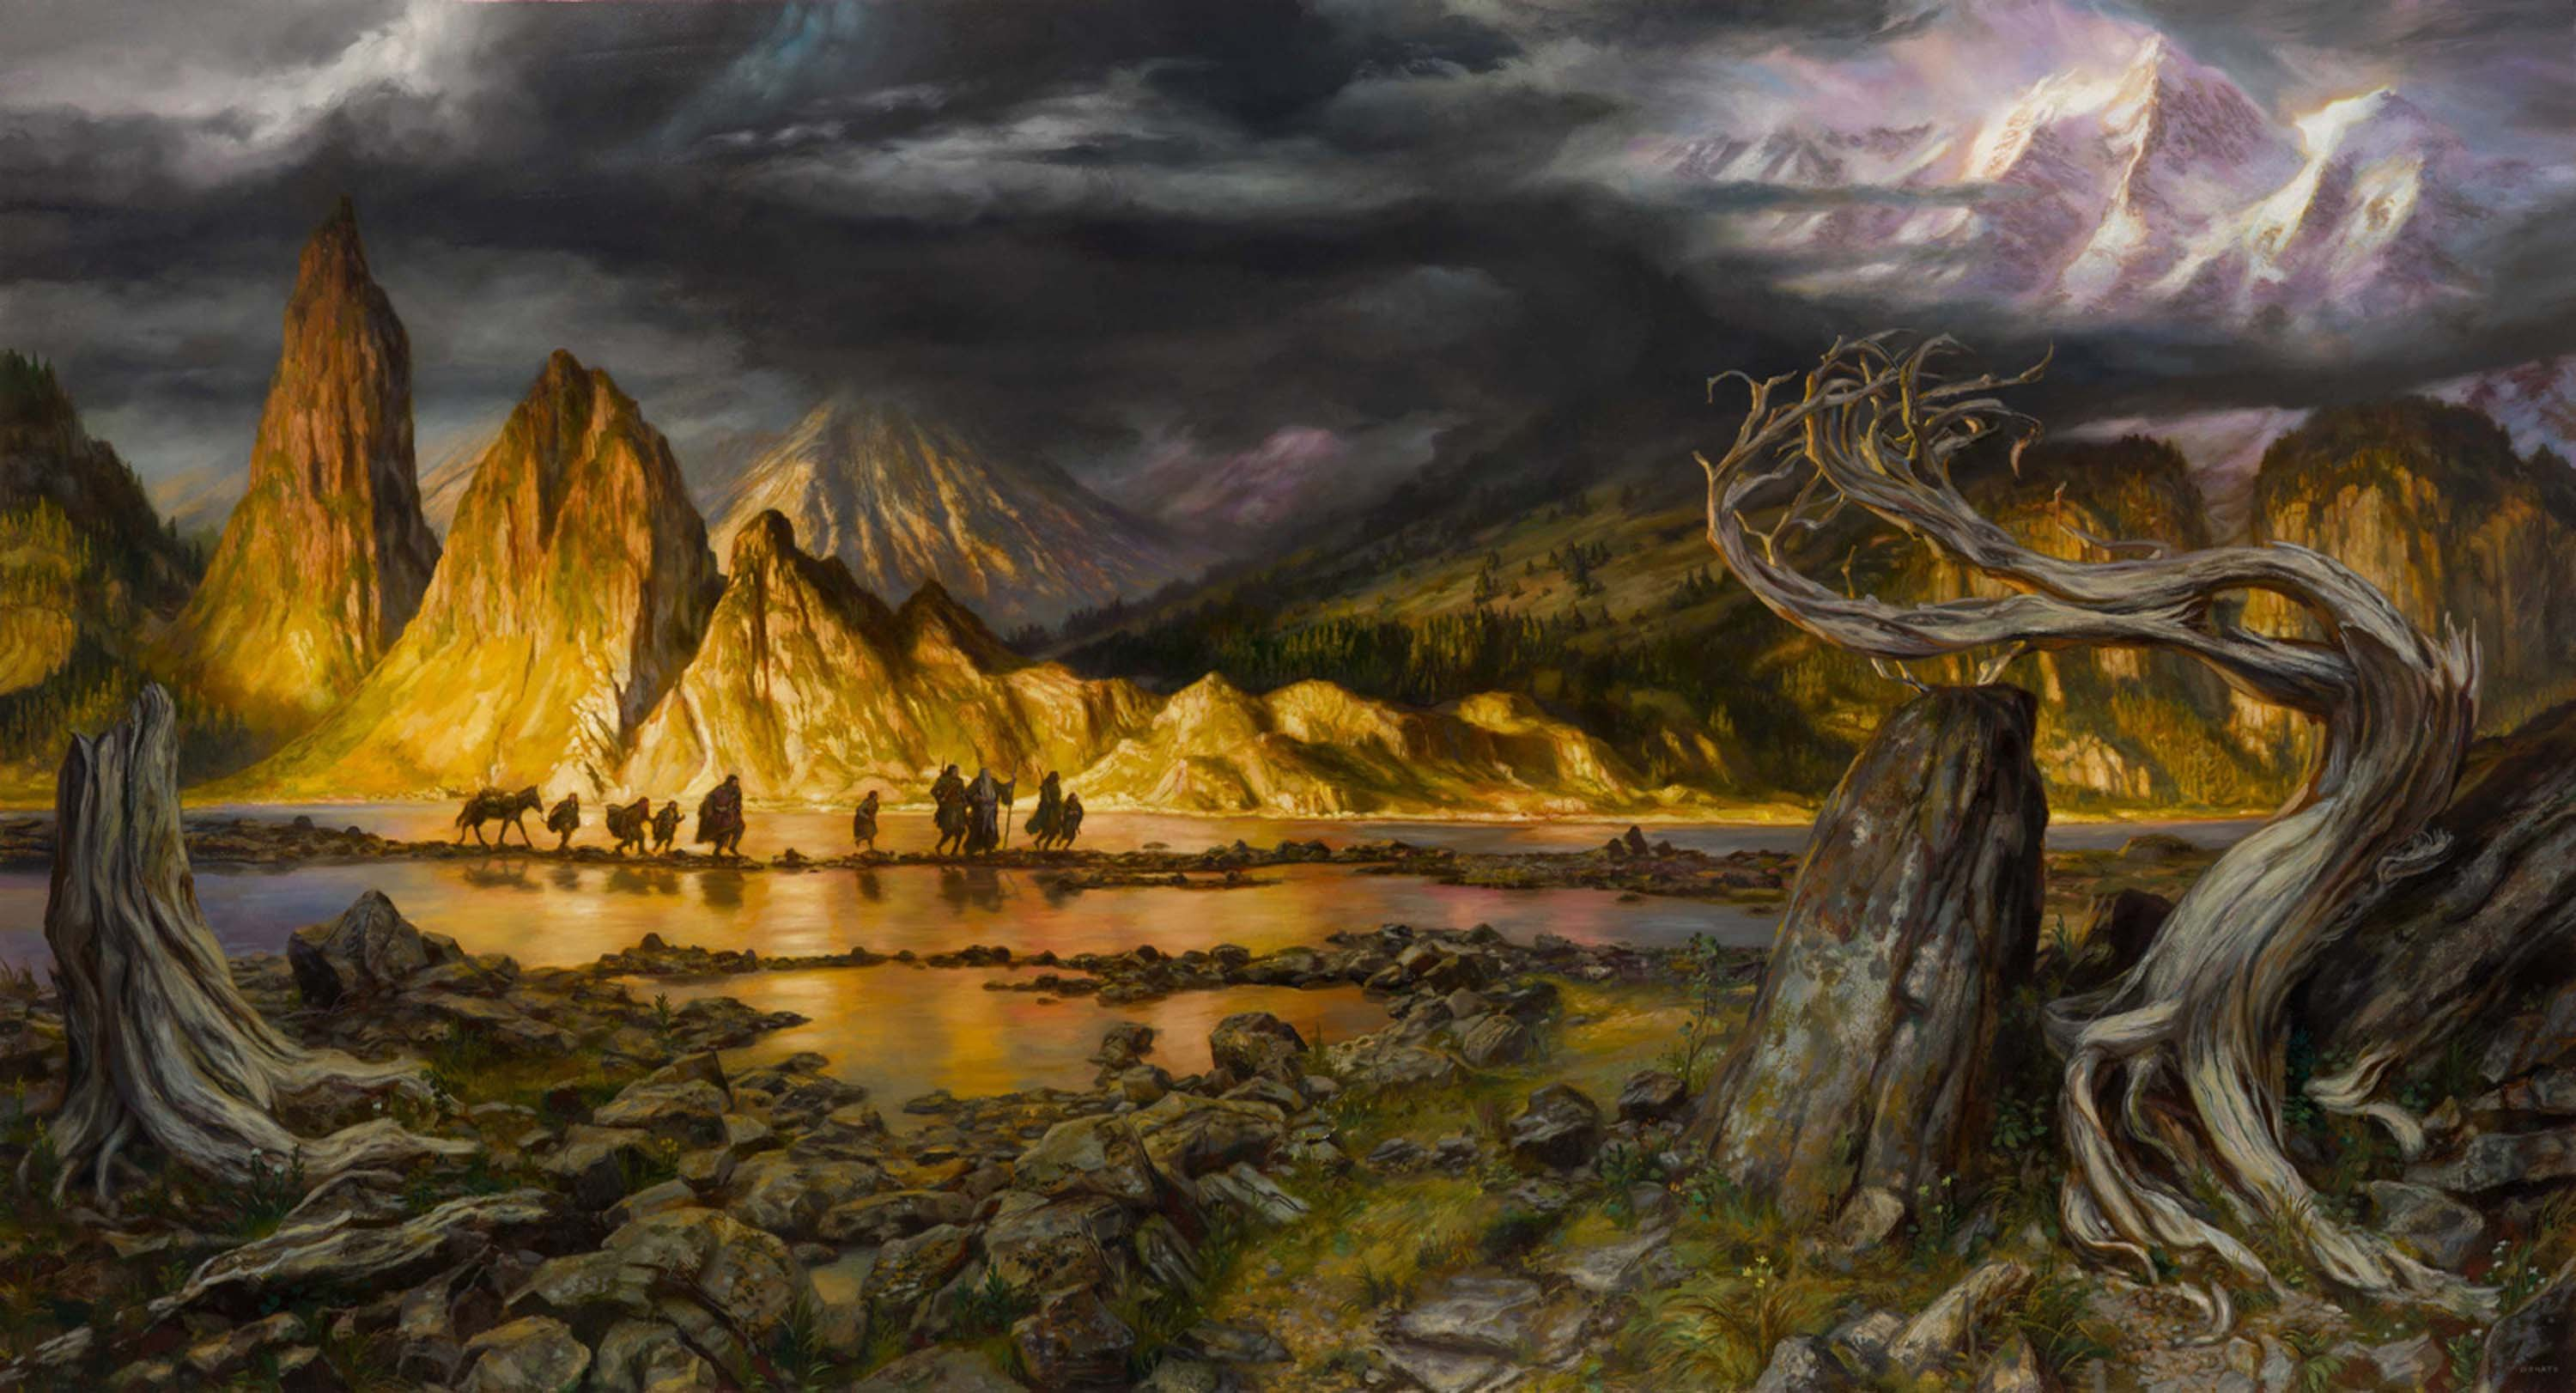 "The Fellowship in Hollin 35"" x 66""  Oil on Panel 2017 'only the stones remember the elves now.' original art available for purchase"